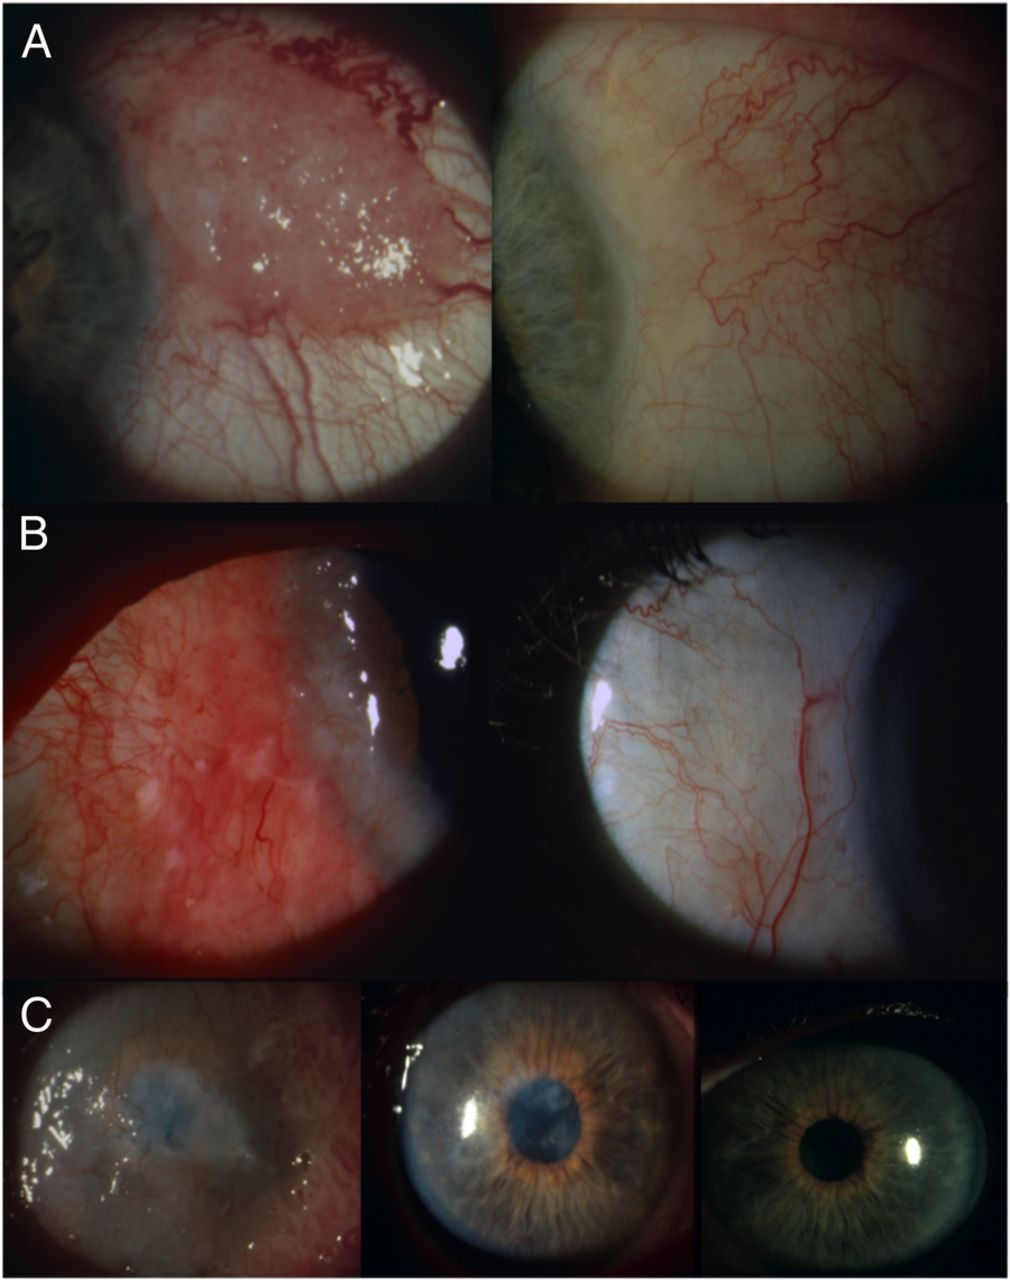 treating conjuctival ocular surface squamous neoplasia Clinical presentation of ocular surface squamous there is a trend toward treating conjunctival lesions suspected to be ocular surface squamous neoplasia.